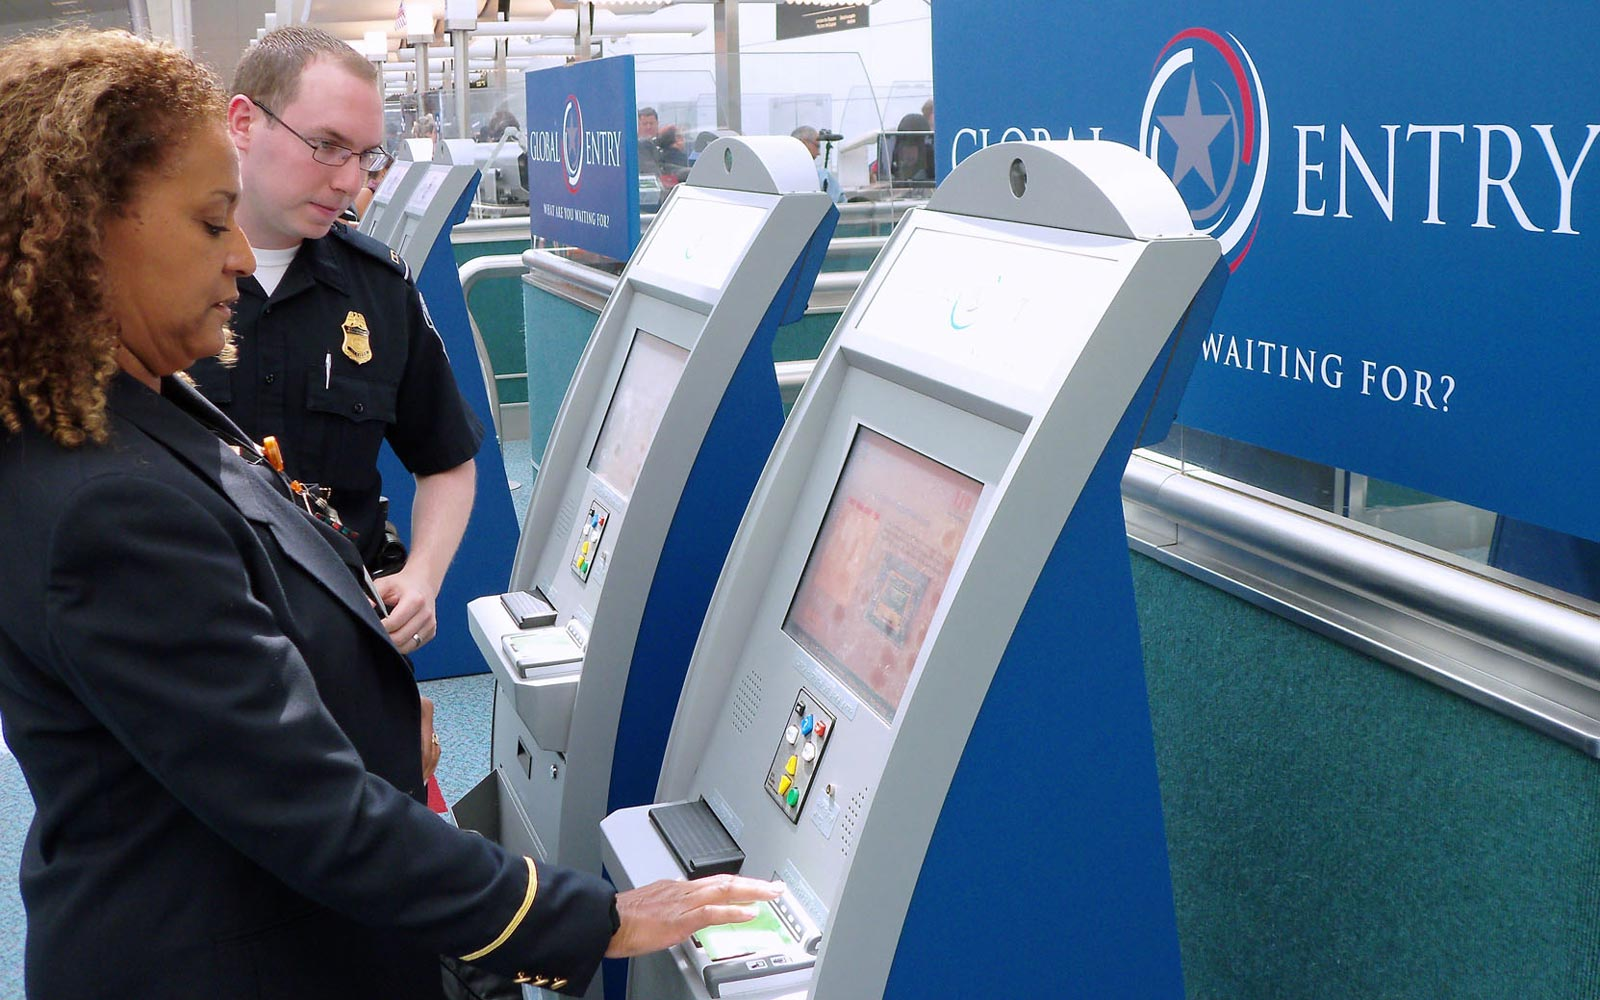 Here's Why the Global Entry Enrollment Center at LAX Was Closed